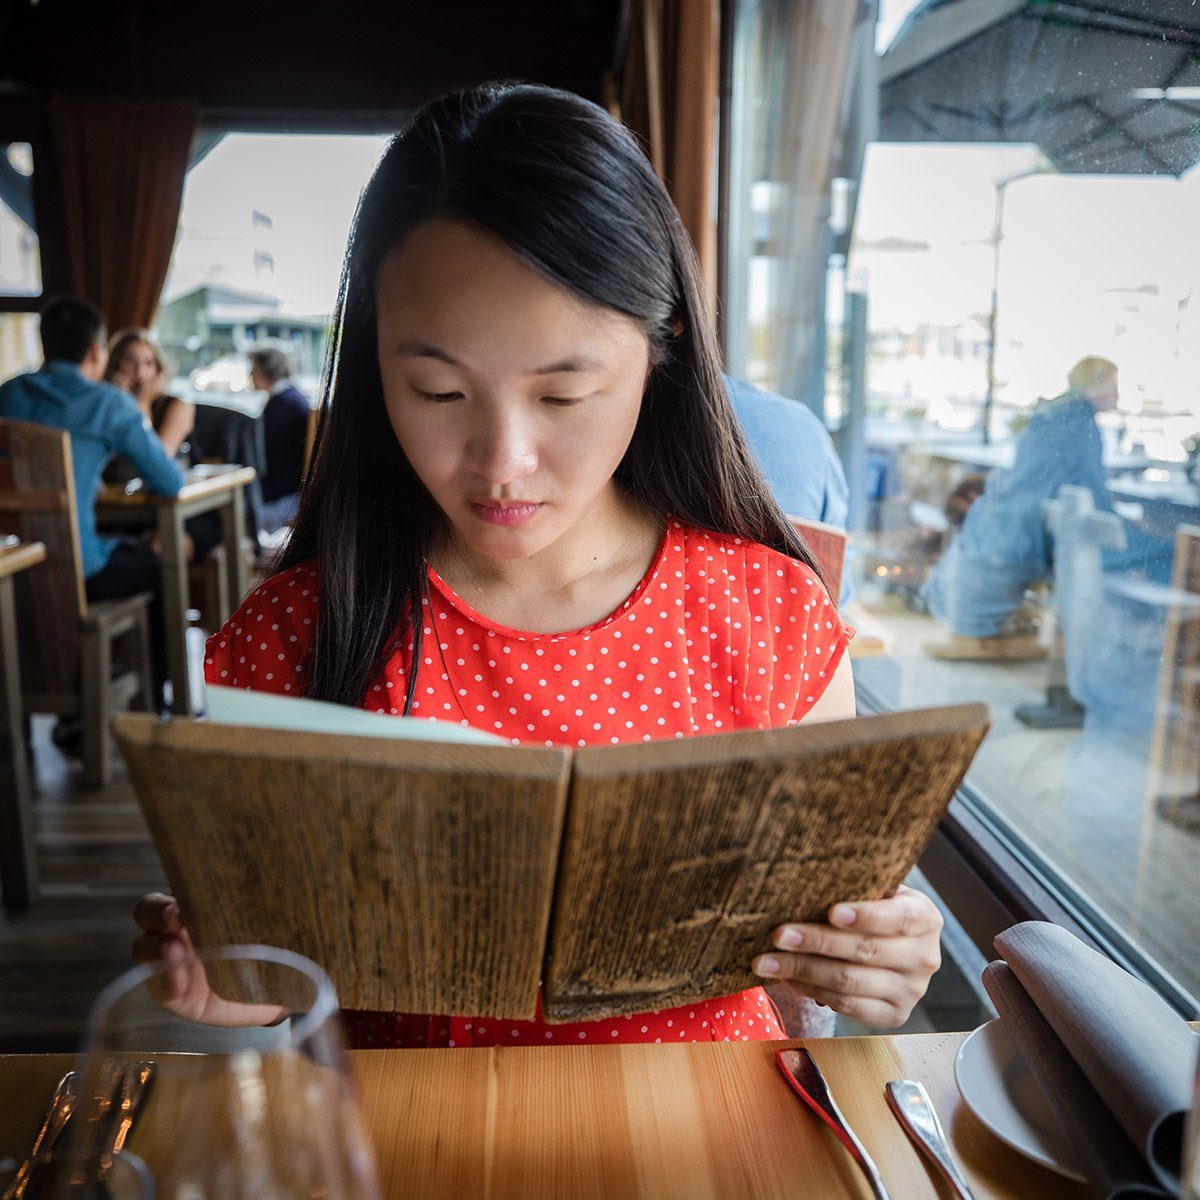 A young Chinese woman is carefully reading the menu made of wood at a restaurant on a fine day in Trondheim, Norway.